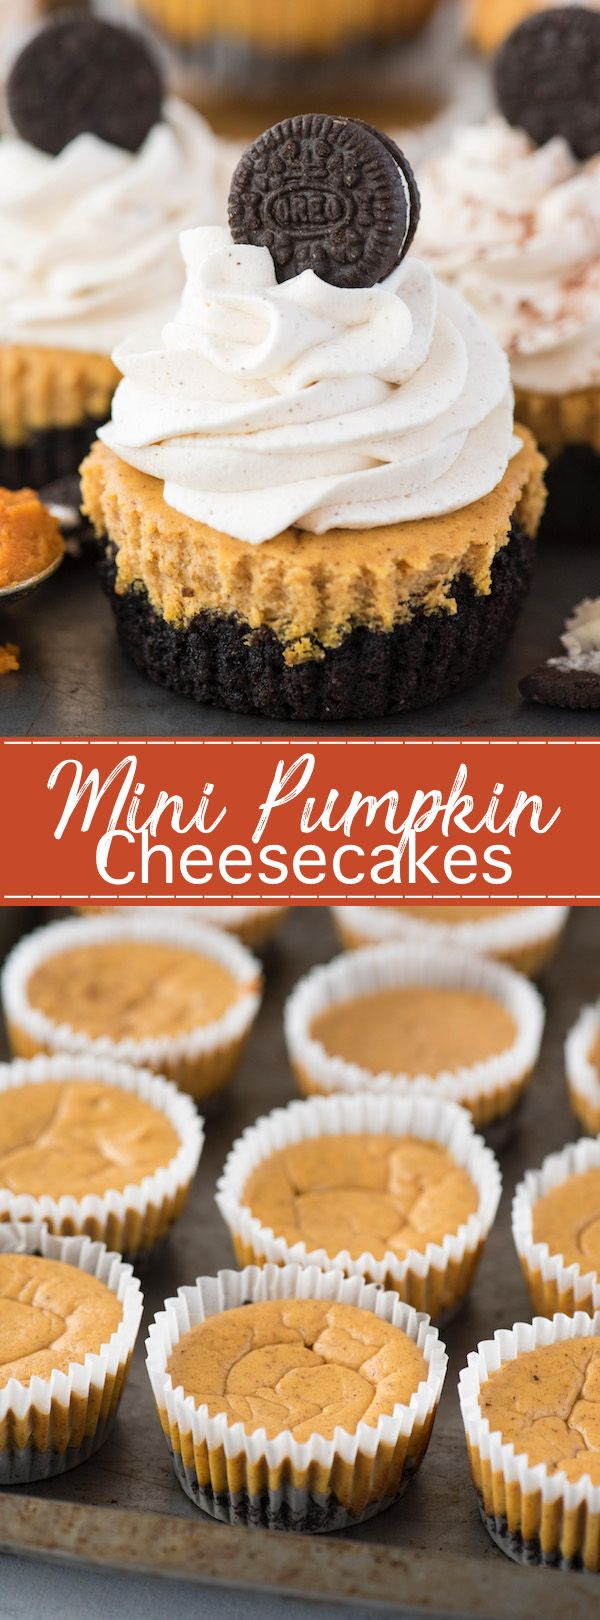 Mini Pumpkin Cheesecakes | The First Year